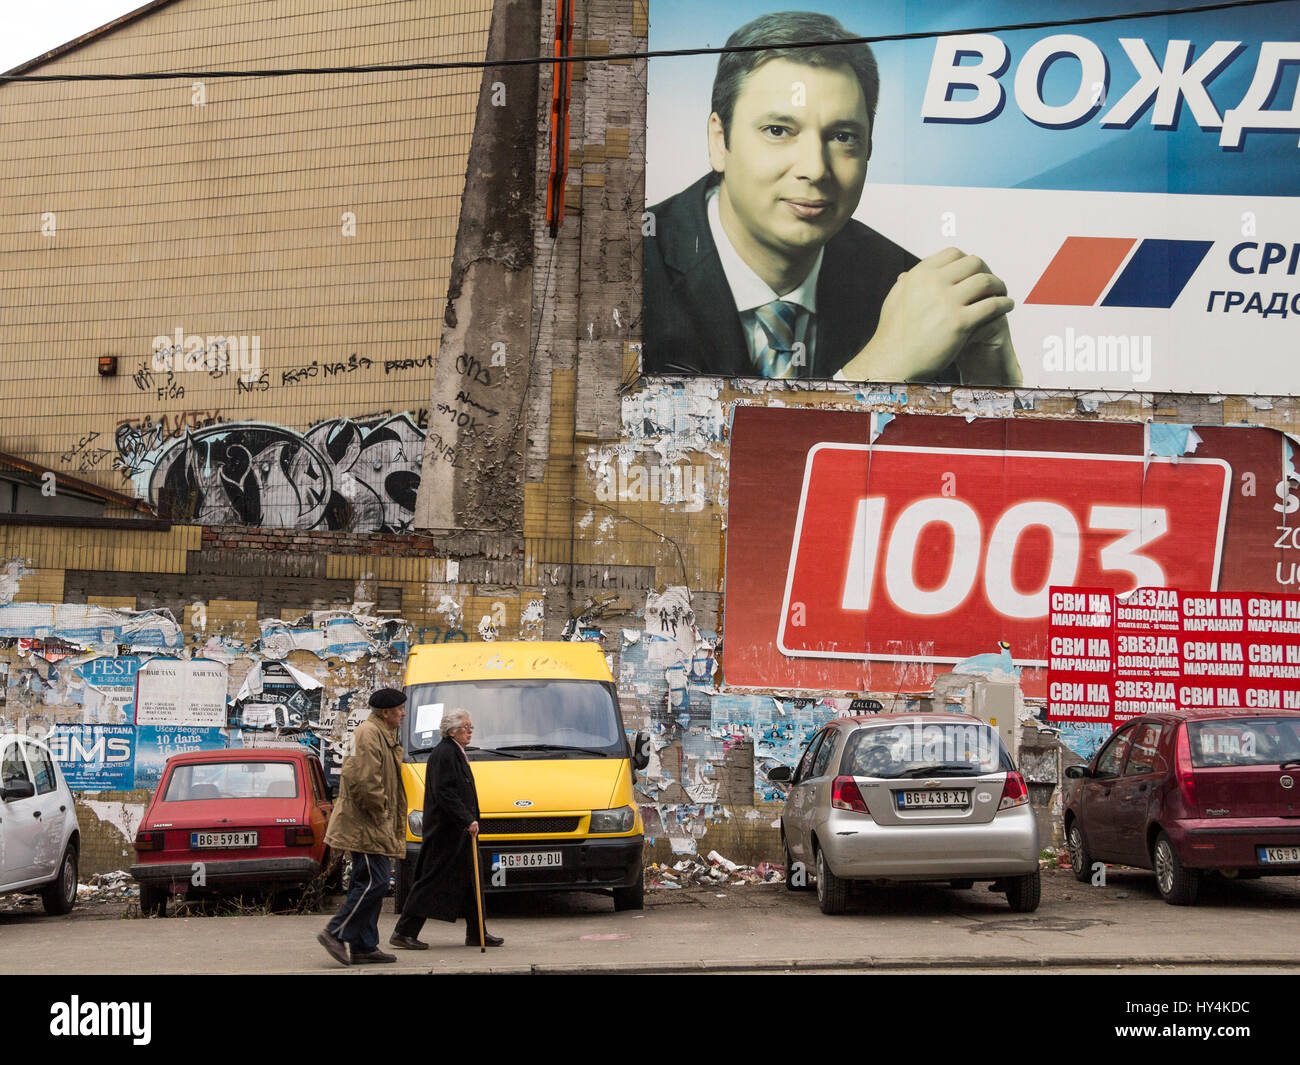 BELGRADE, SERBIA - MARCH 8, 2015: Old people walking in front of a propaganda poster for the Prime Minister Aleksandar - Stock Image